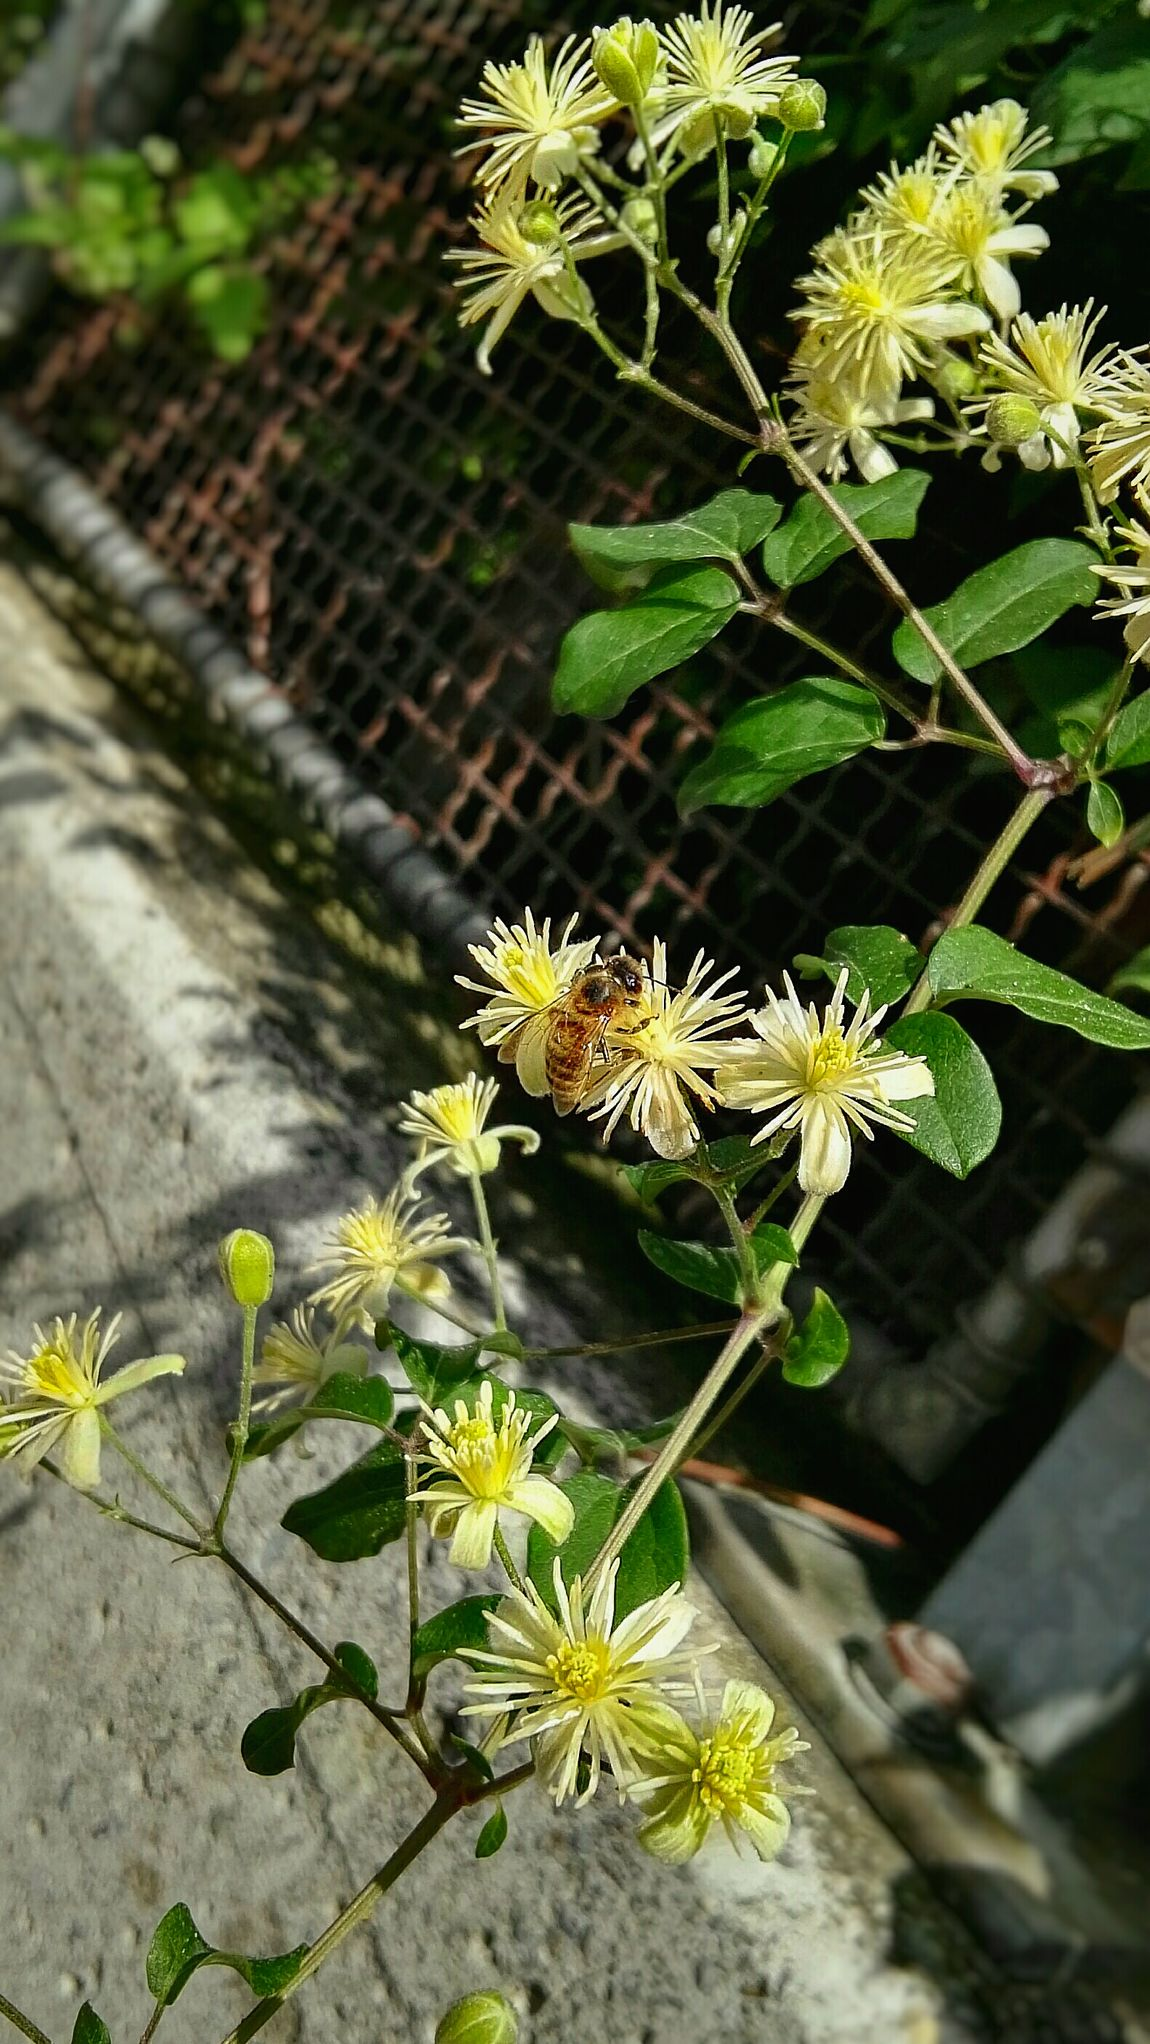 Good Morning : Bee 🐝 on Flower, In Foregound ofBeton, Bees And Flowers, Bee Seeing A Bee On Top of an Blüte : AKA\Blossom. Gitter/Grid & Nature In Background ... Im Hintergrund ,,. Im Vorbeifahren ... Beton überall